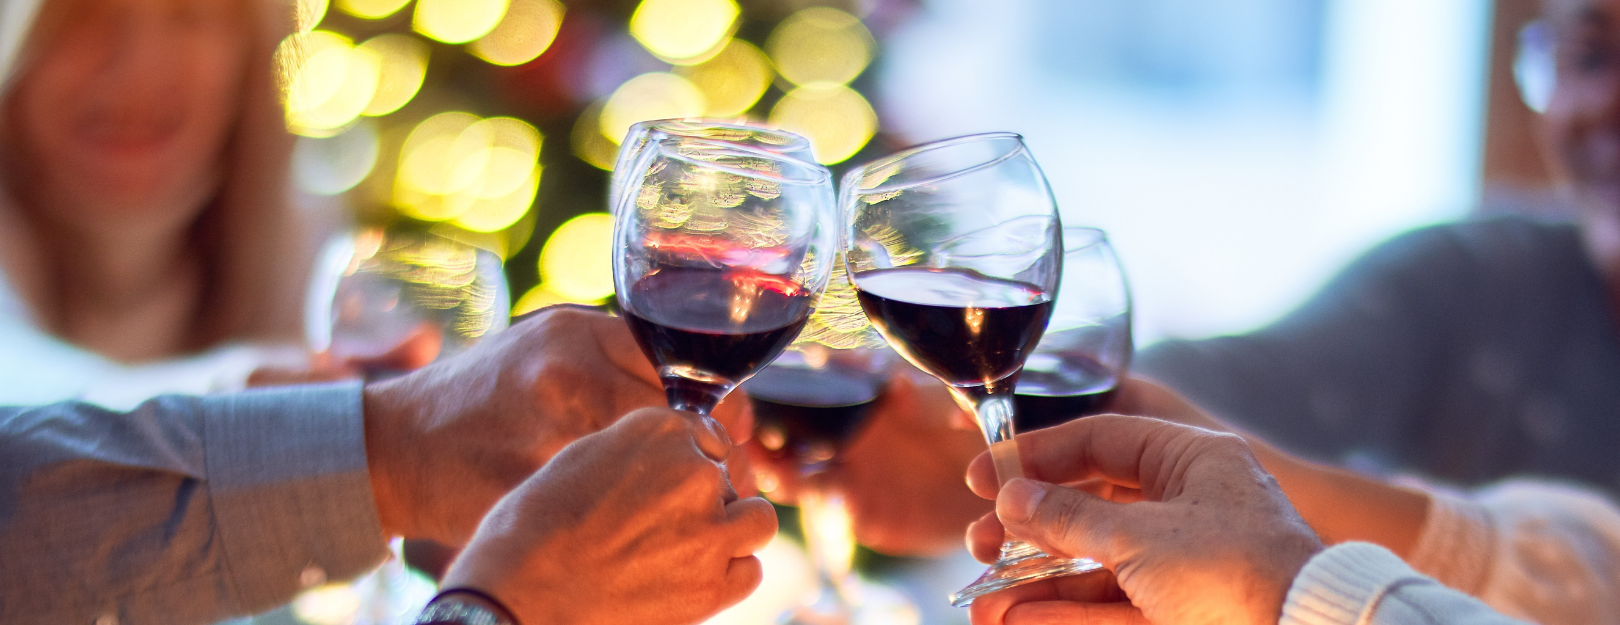 Wine and appetizer pairings for the holidays